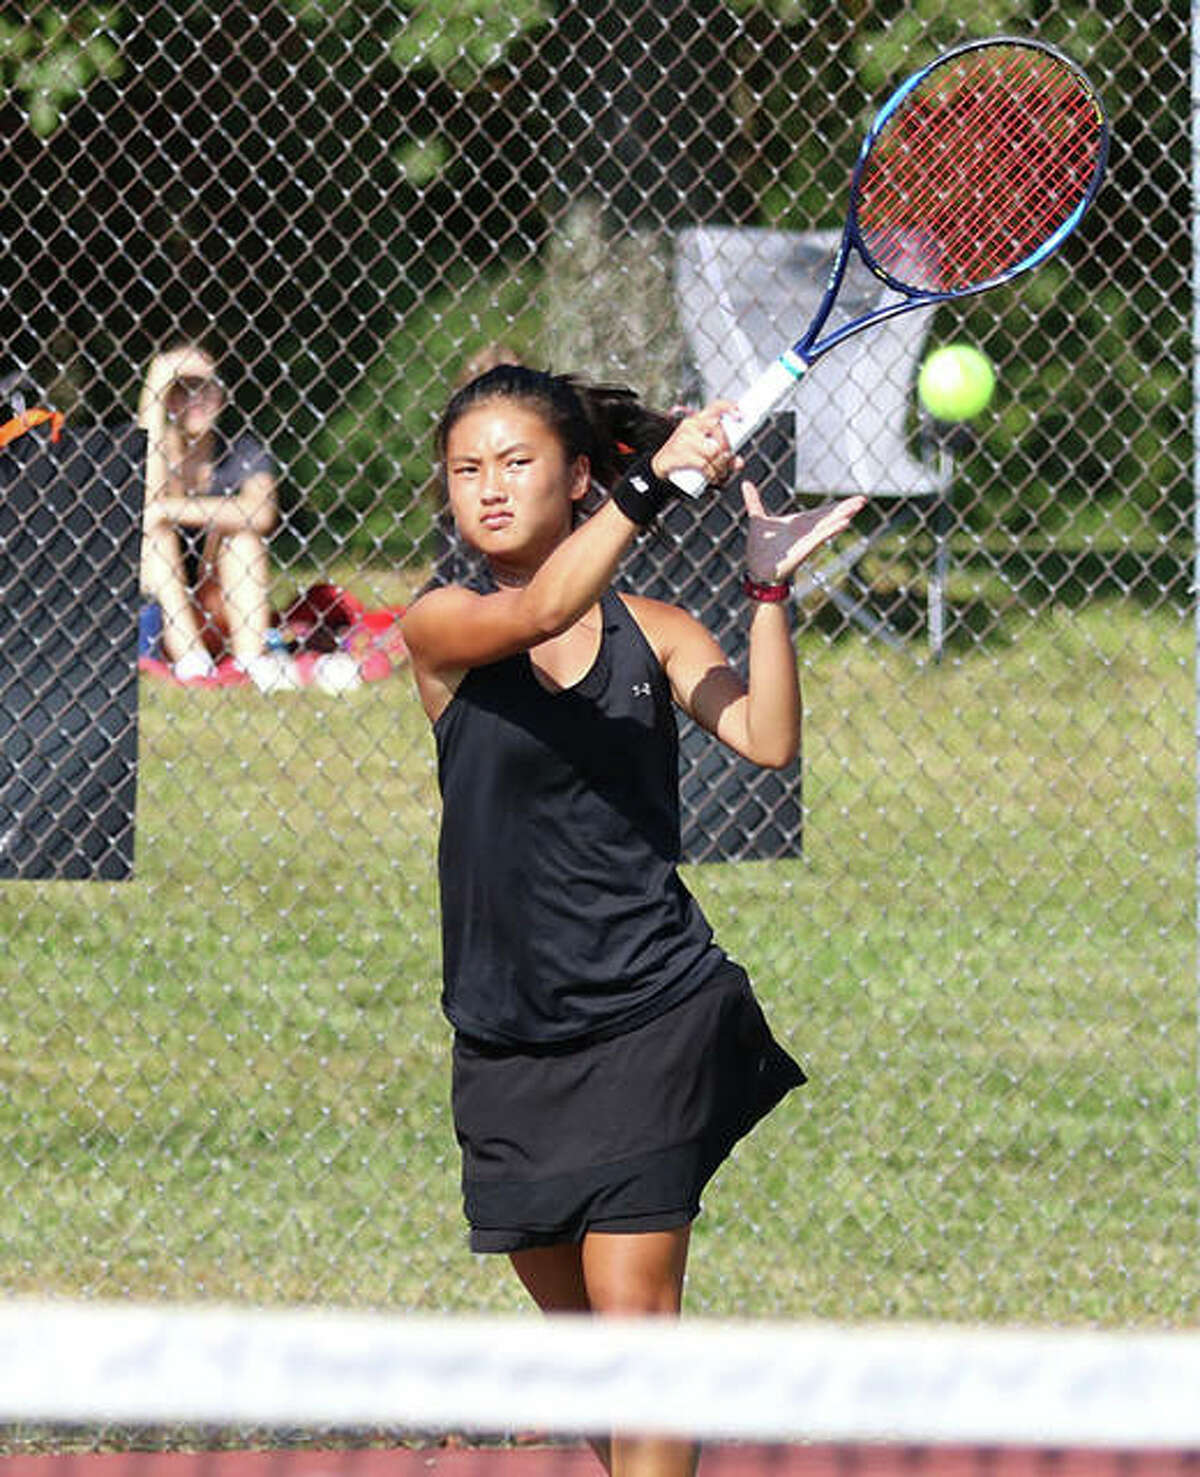 Edwardsville's Chloe Koons hits a shot a match last season at Edwardsville. Koons finished the season as a SWC and Class 2A sectional singles champion with a 34-0 record.